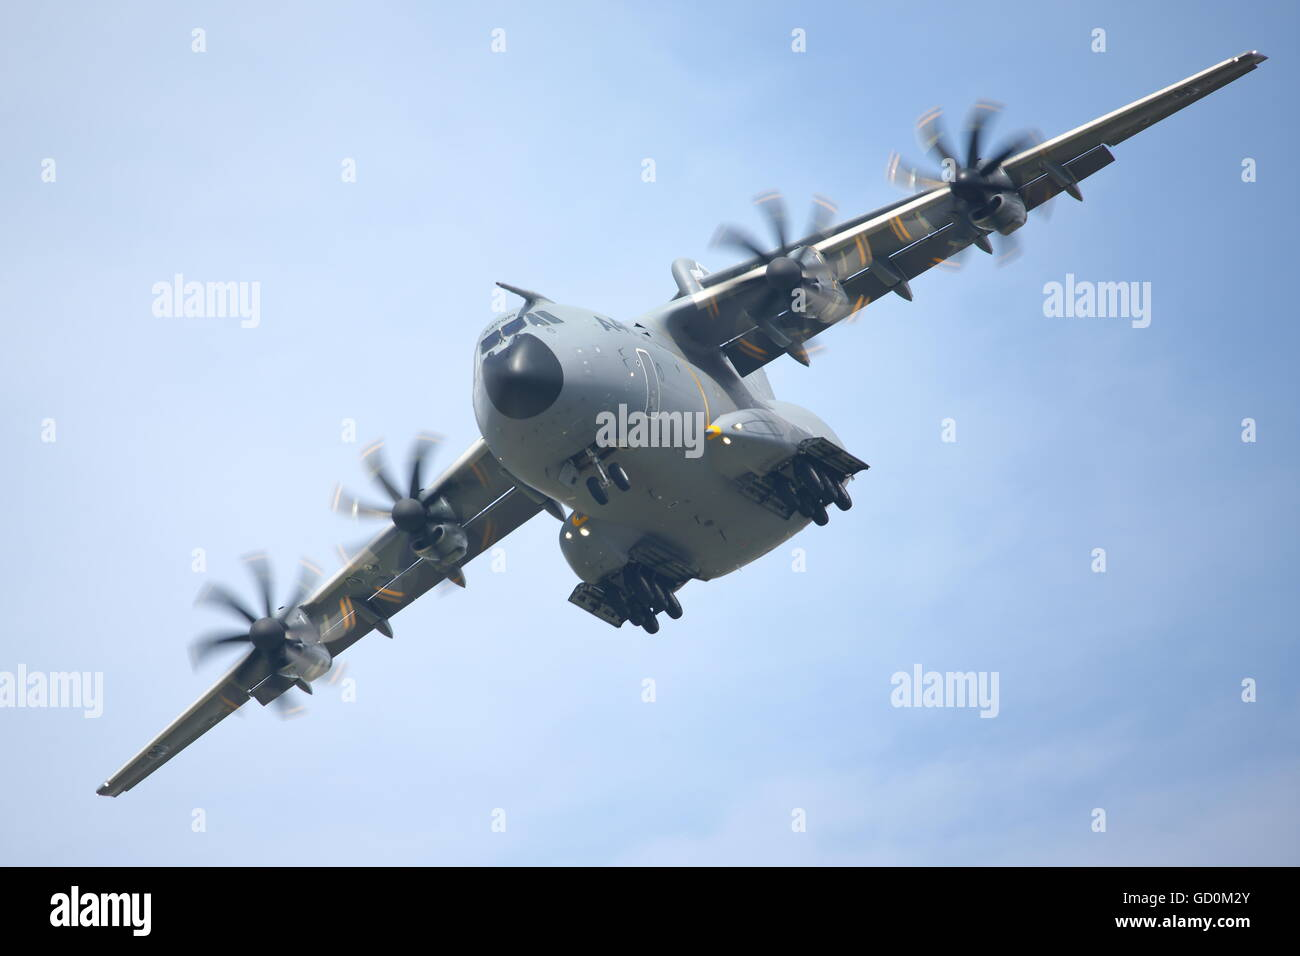 Fairford, UK. 09th July, 2016. The Royal International Air Tattoo 2016 provided a great display of modern military Stock Photo